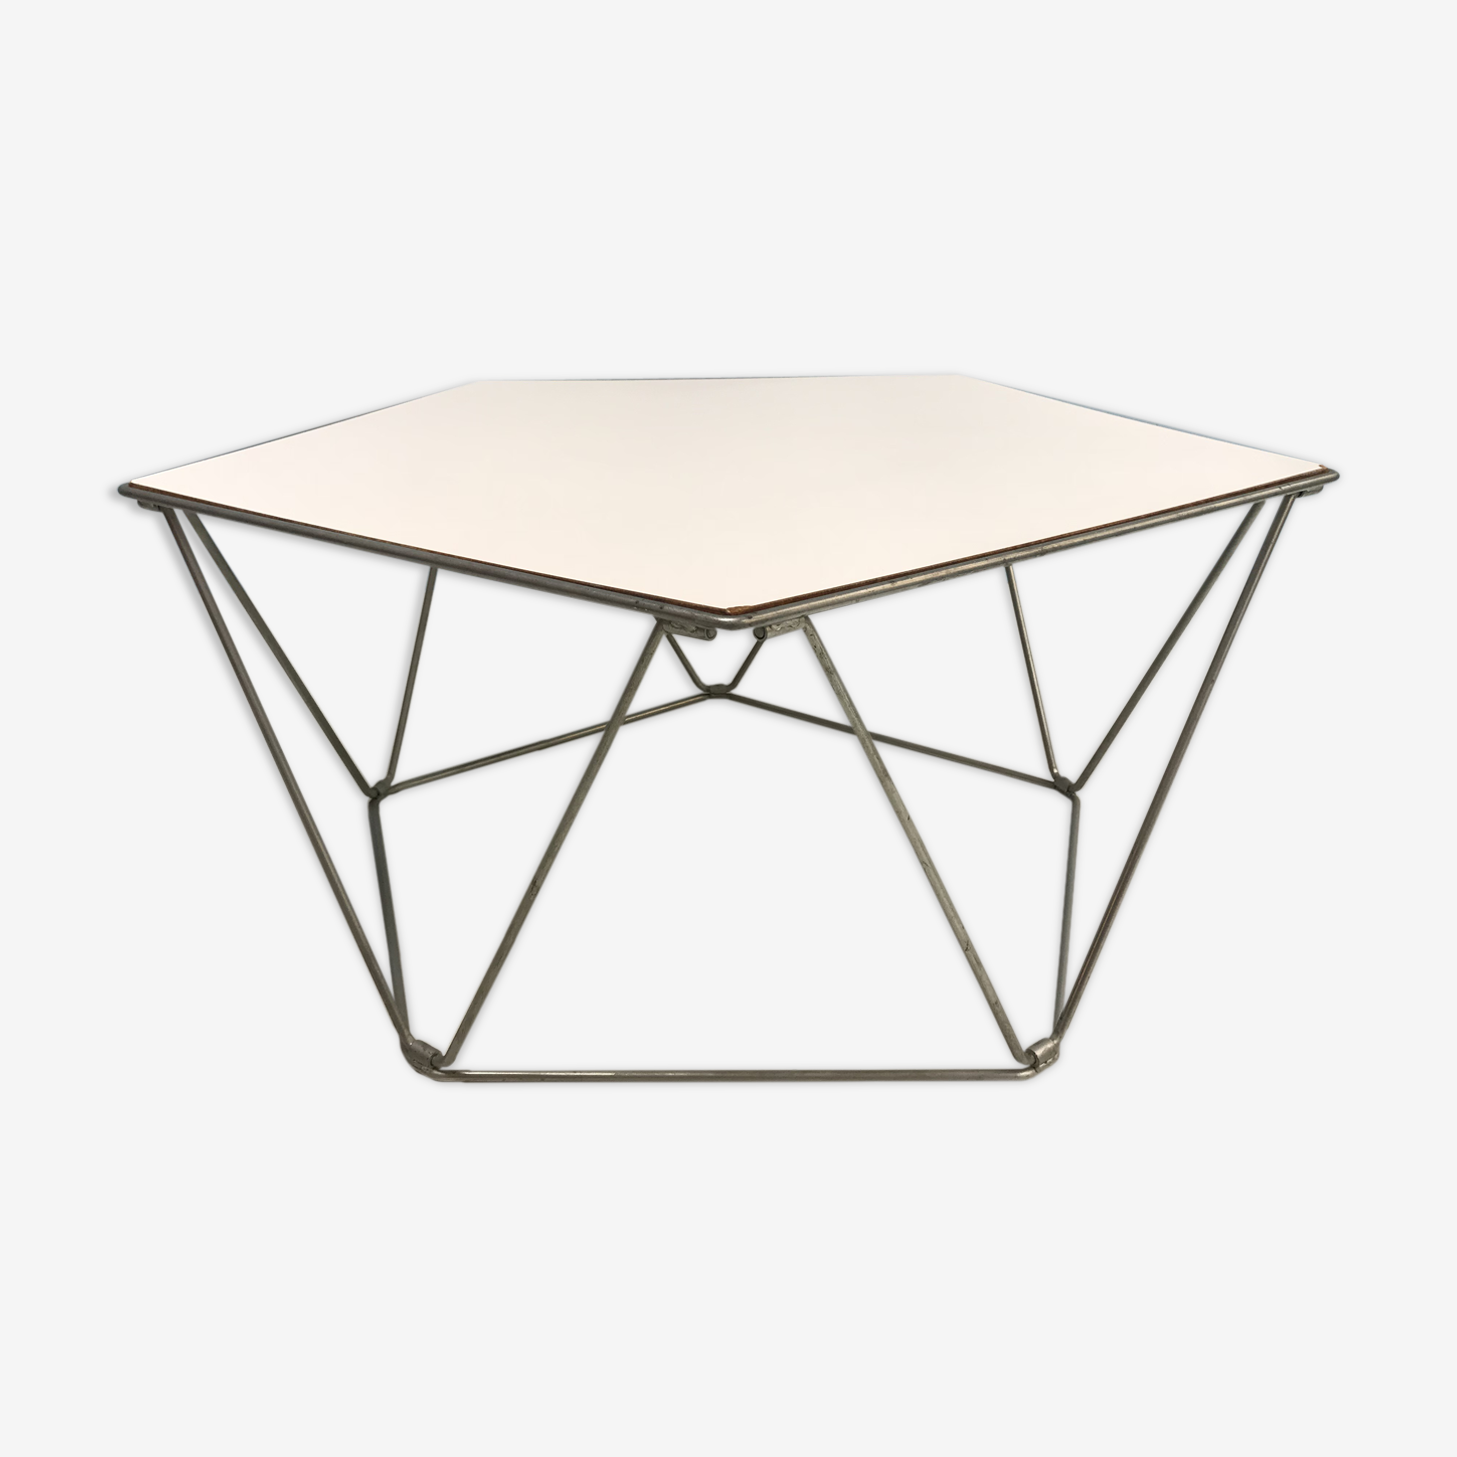 Penta coffee table by Kim Moltzer, Jean-Paul Barray  1968